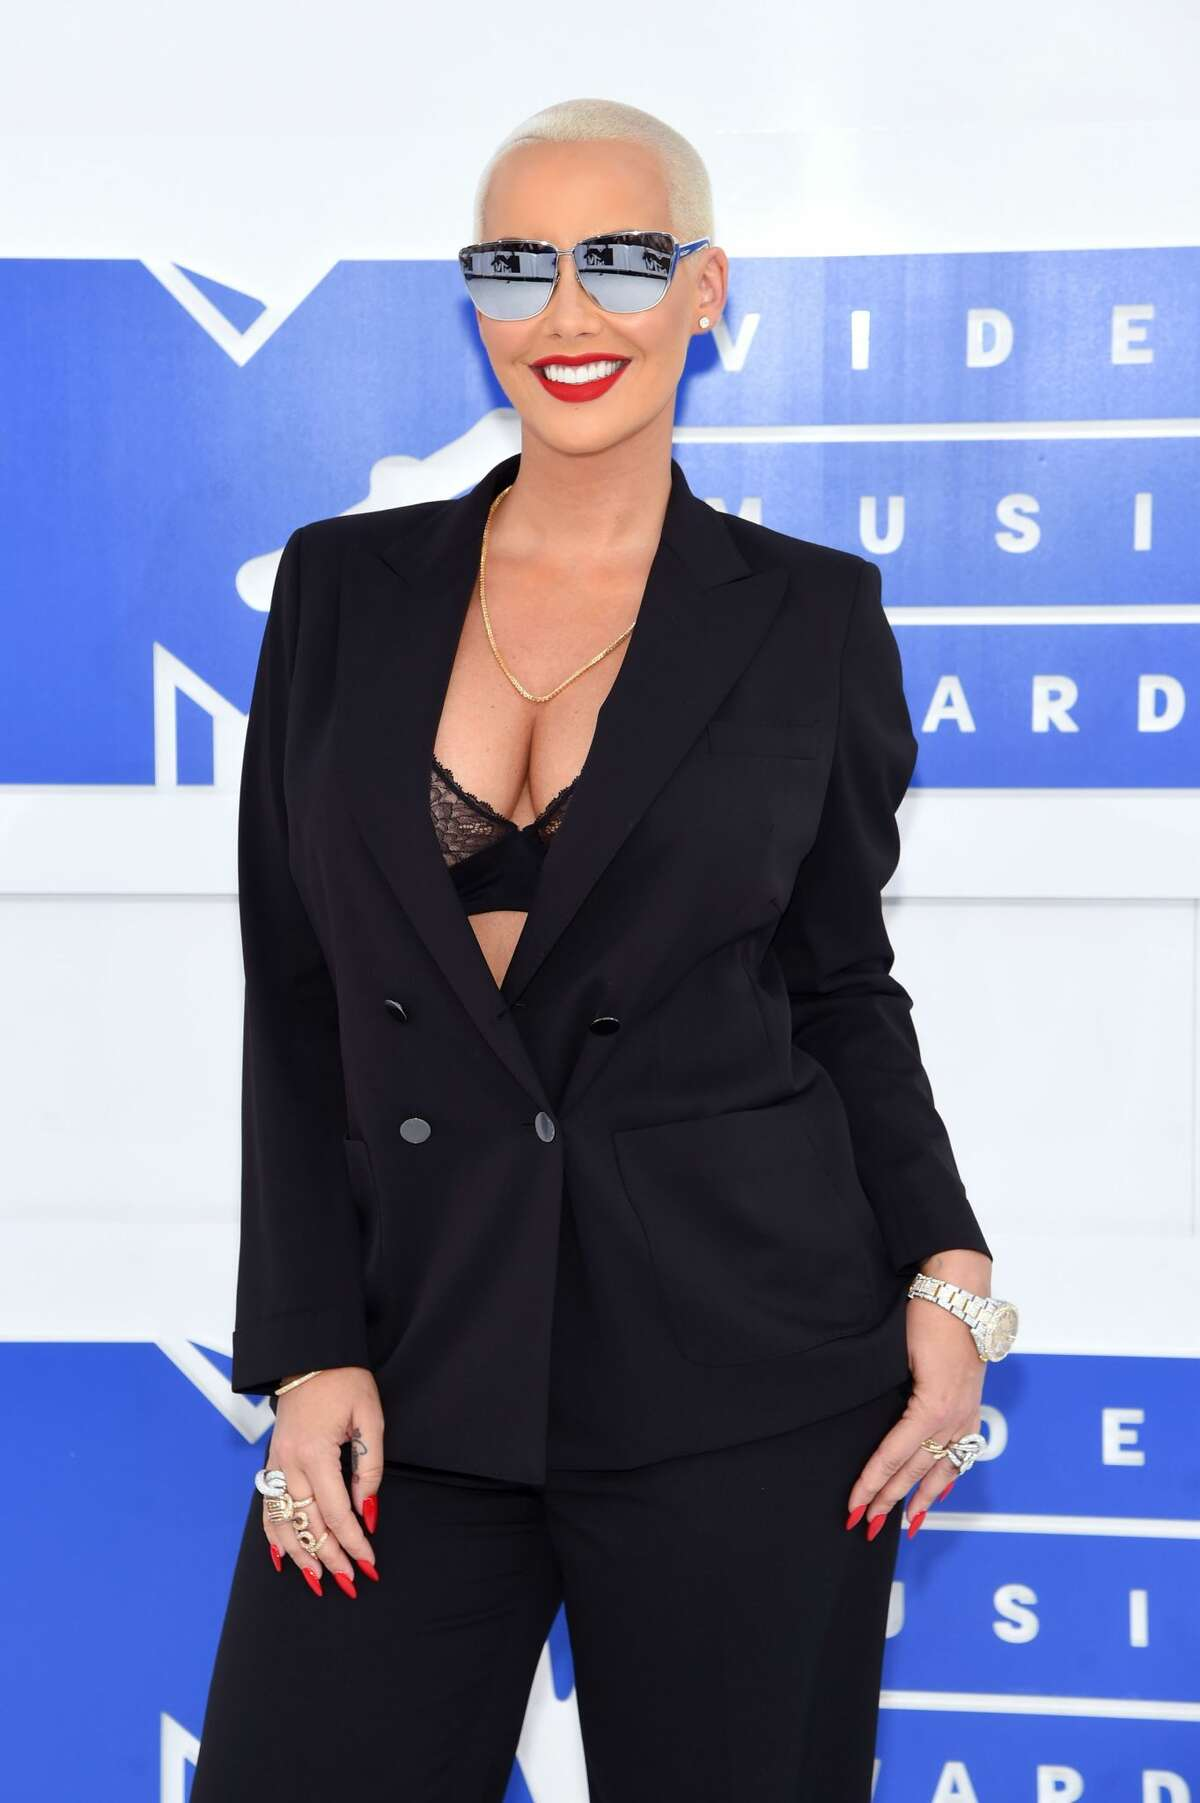 Best: Amber Rose Best, in the sense that an understated black suit with one's bra showing counts.